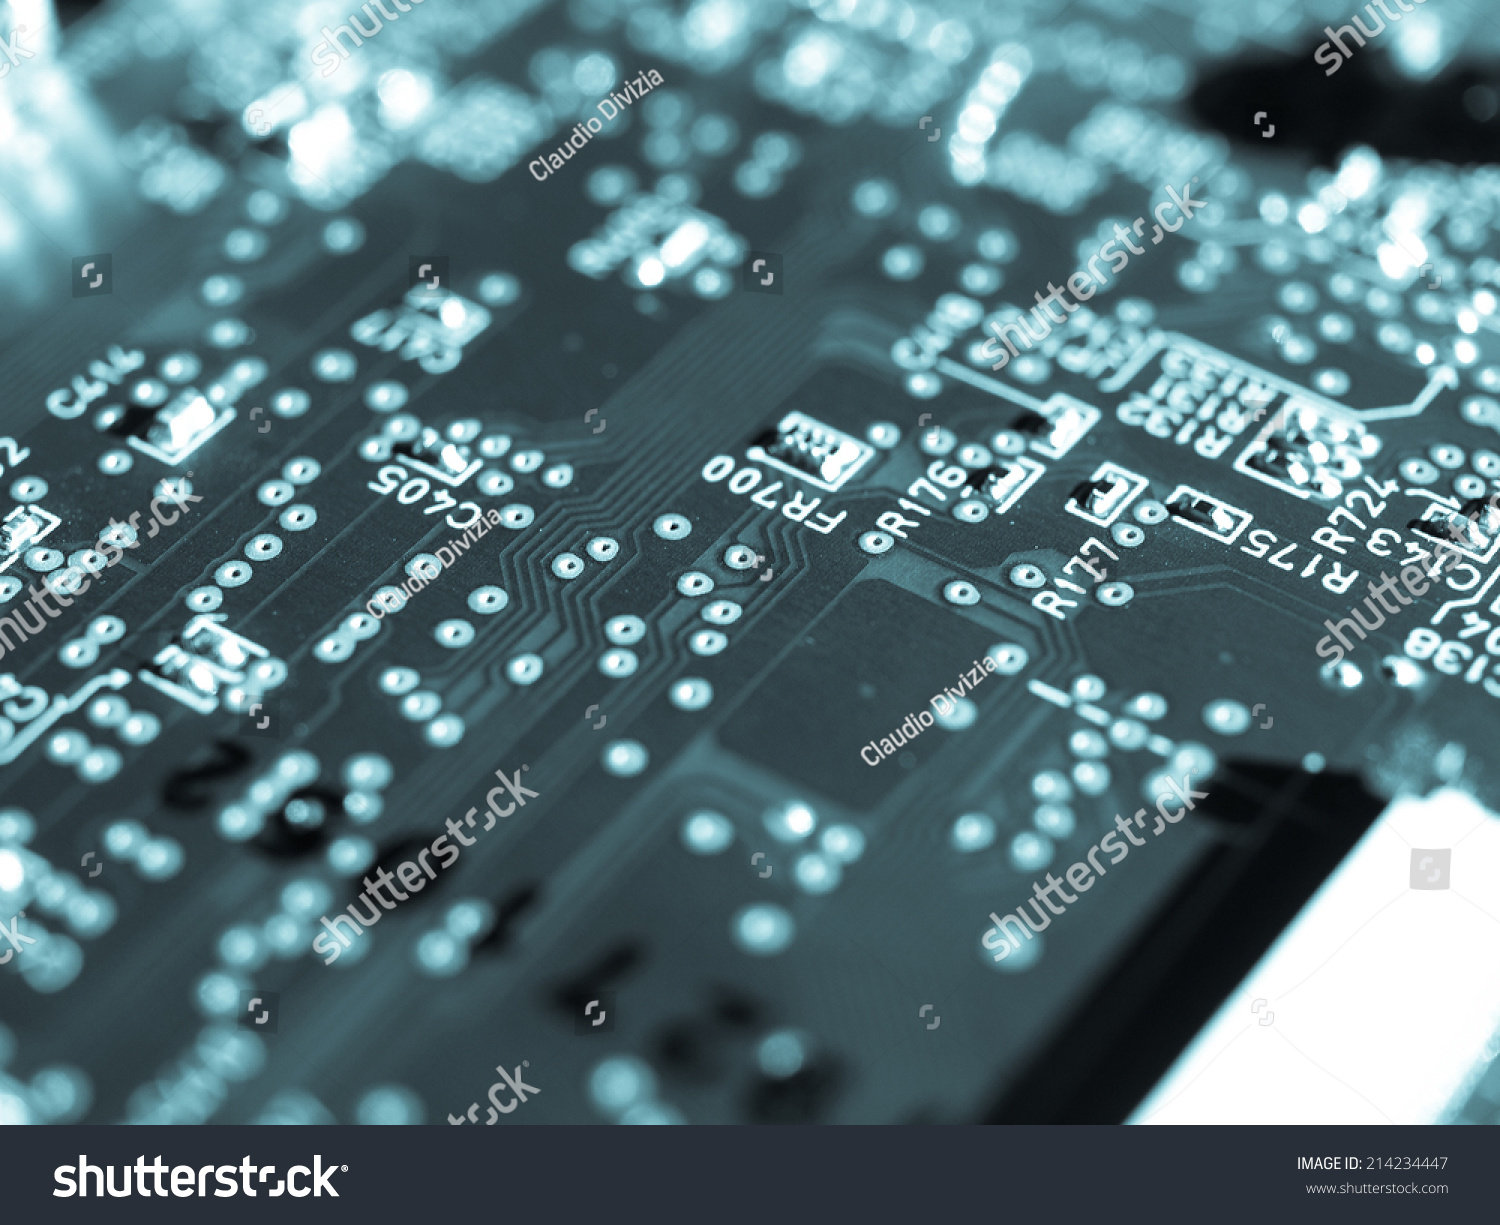 Detail Of An Electronic Printed Circuit Board Ez Canvas Stock Photos Images Pictures Shutterstock